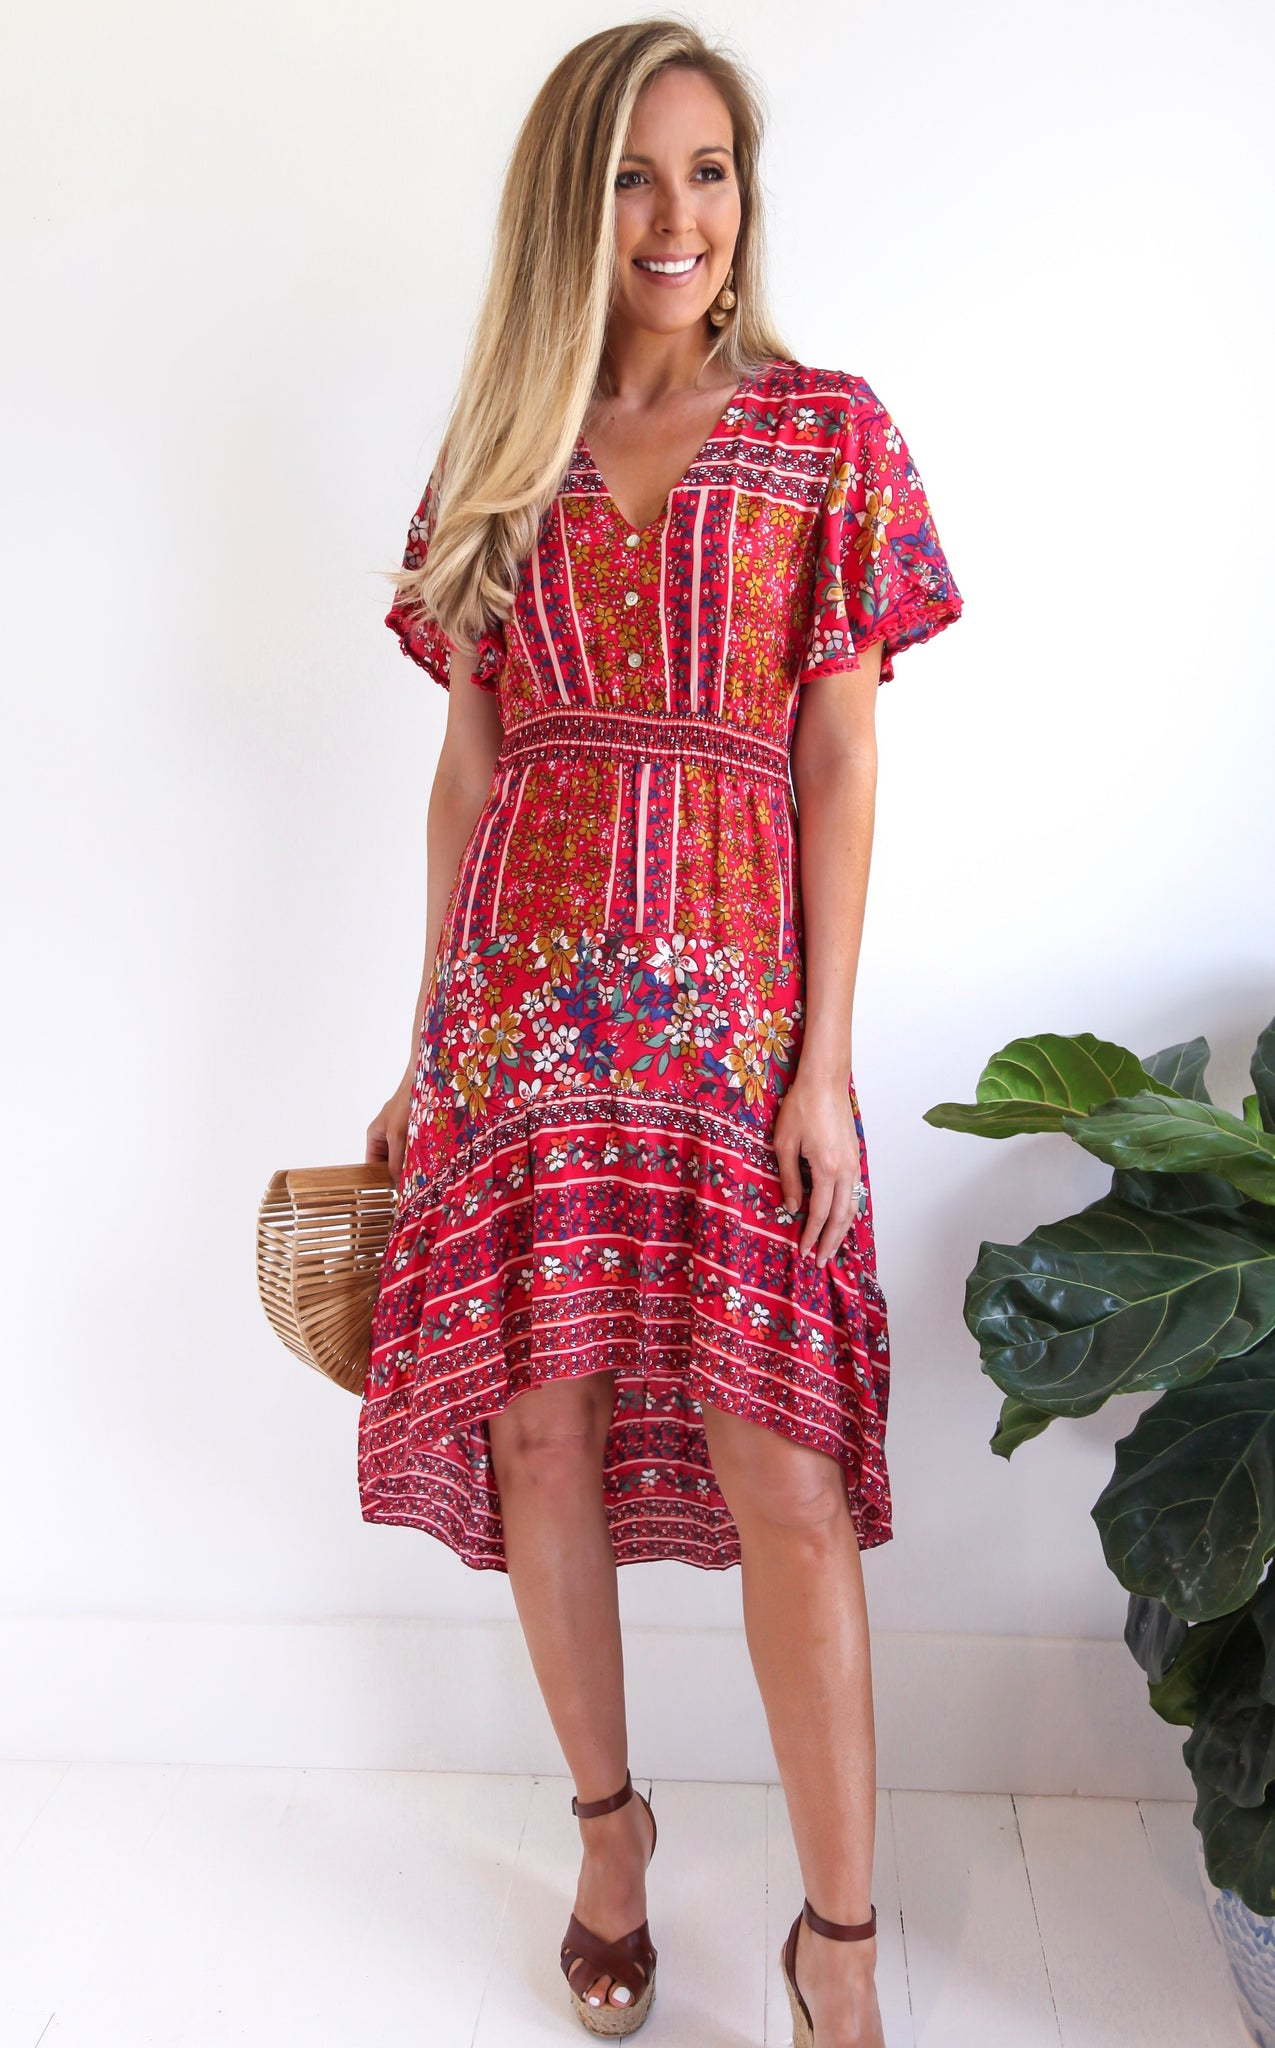 ELLE LAIN - ALLY DRESS - RED